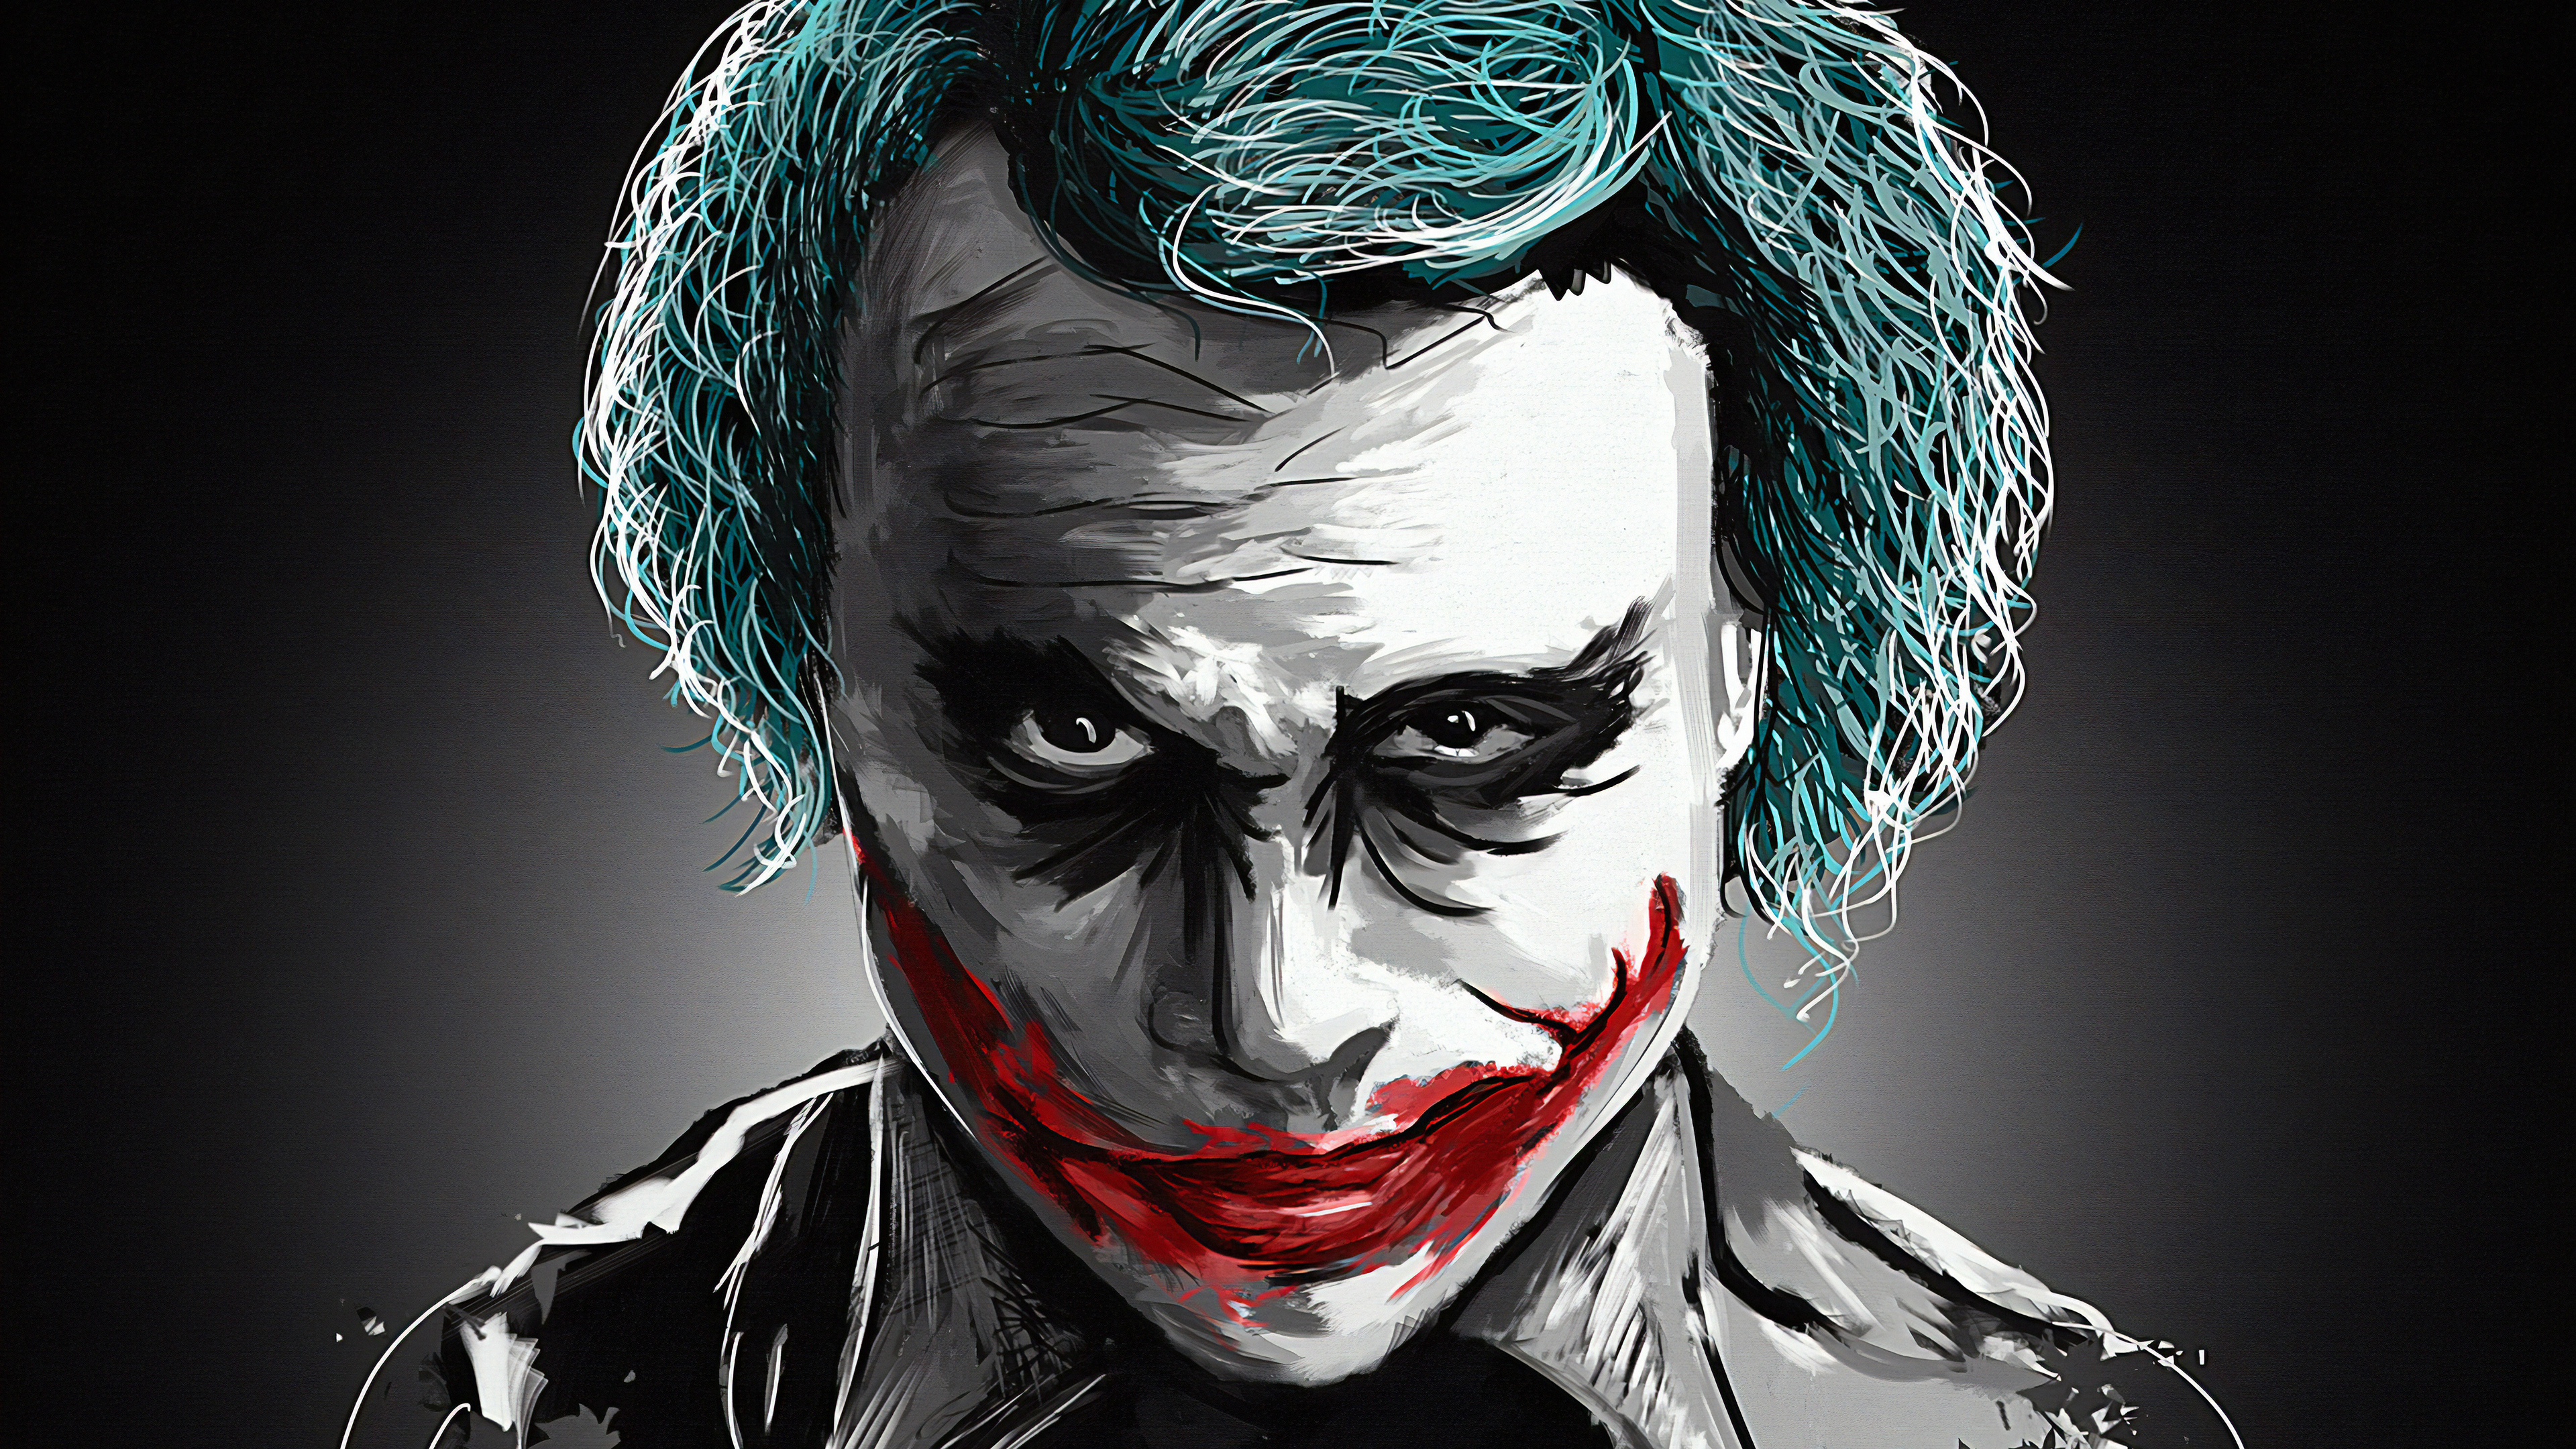 1152x864 Joker Heath Ledger Art 4k 1152x864 Resolution Hd 4k Wallpapers Images Backgrounds Photos And Pictures